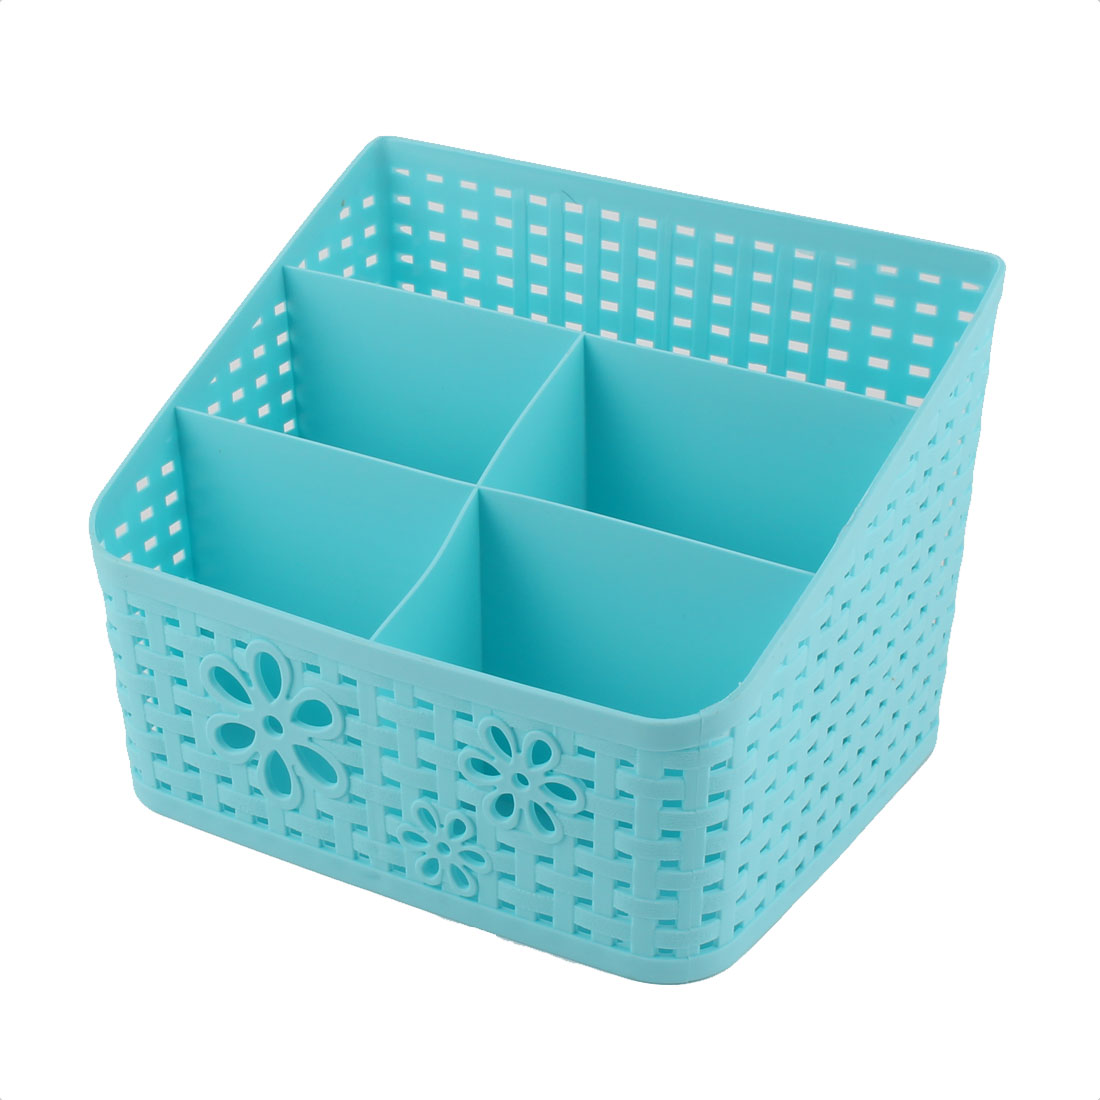 Office Table Desk Plastic 5 Slots Storage Box Organizer Container Blue